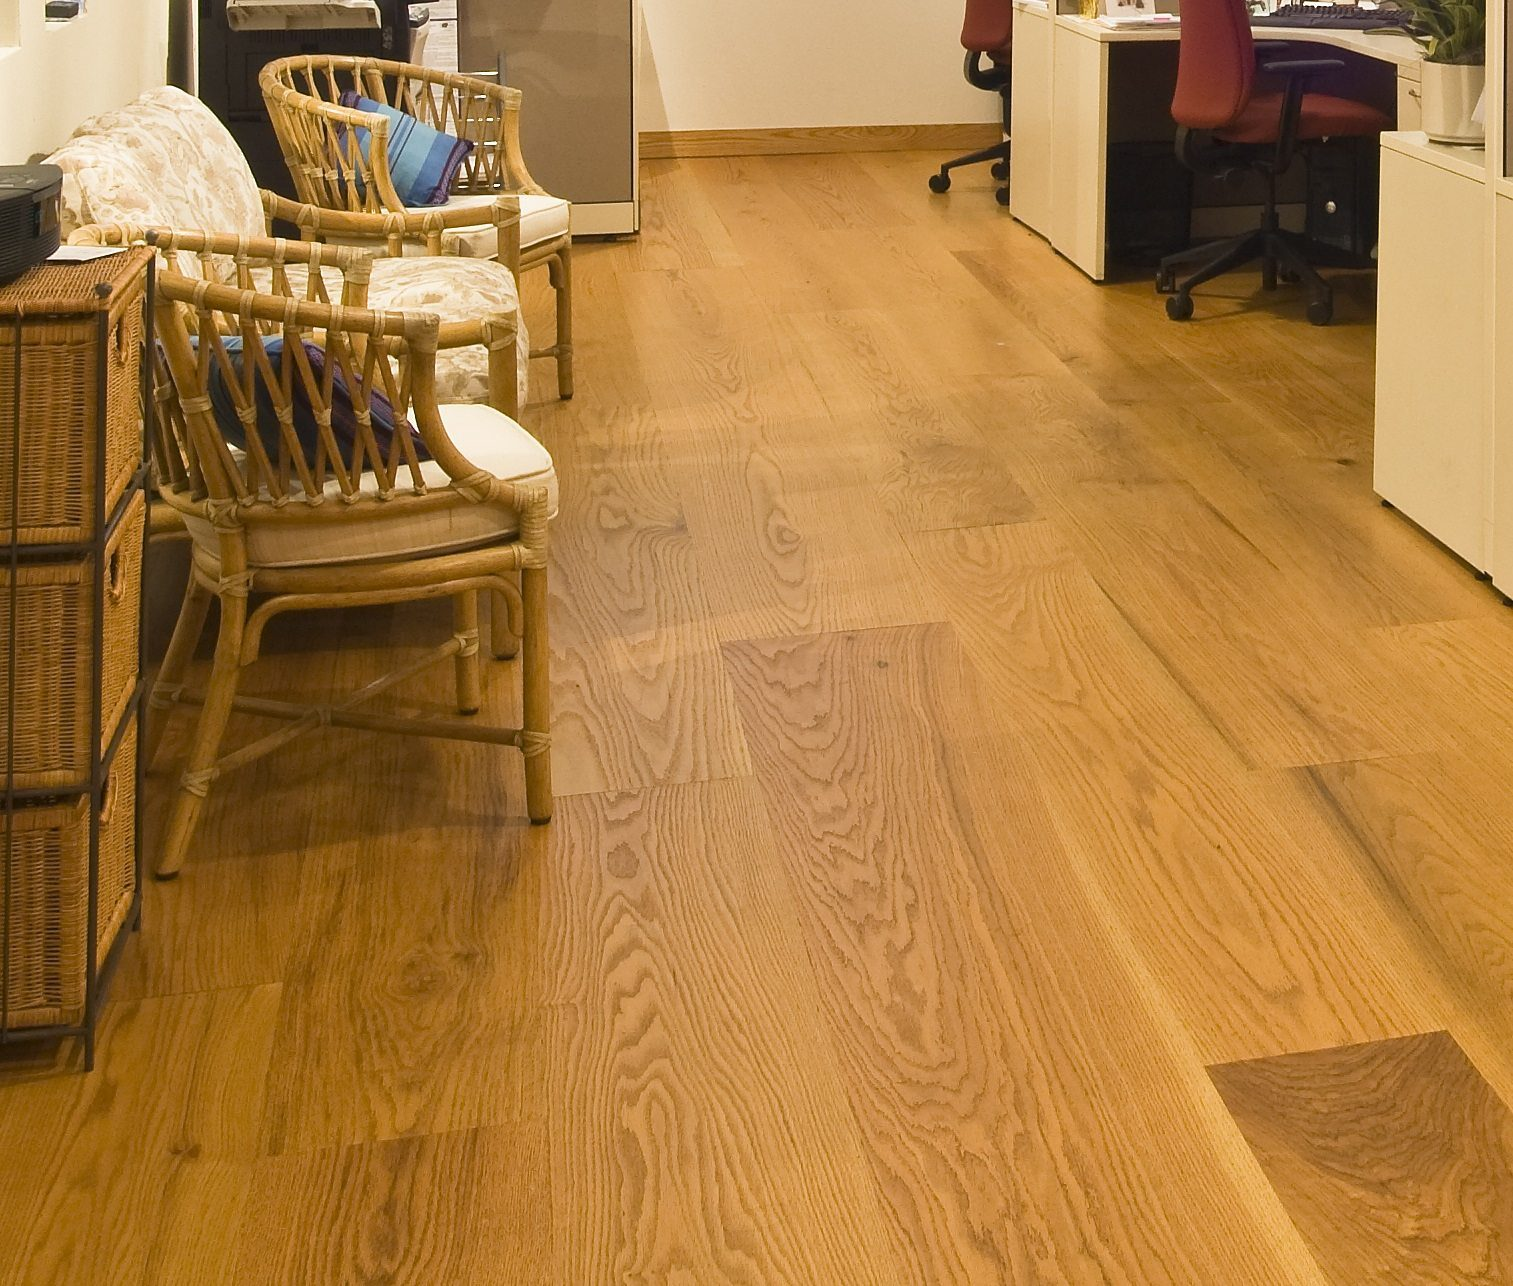 Red Oak Flooring in a Home Office  Carlisle Wide Plank Floors